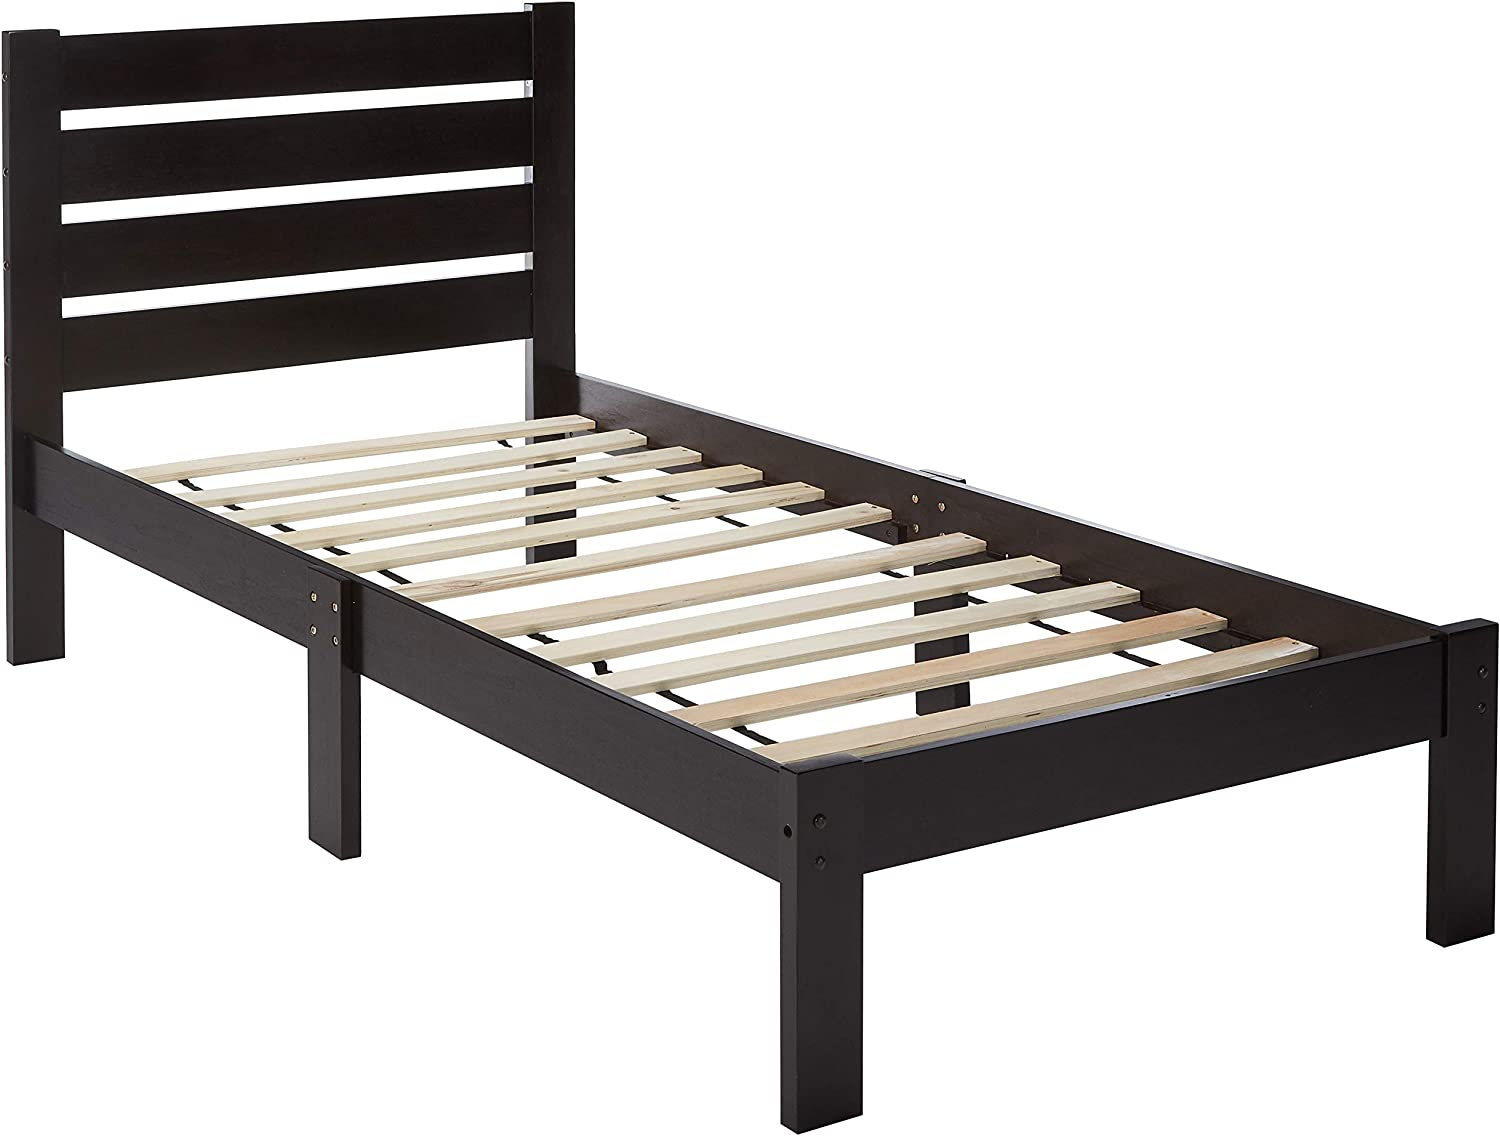 Major-Q Traditional Simple Espresso Finish Wood Frame Twin Bed Bedroom,